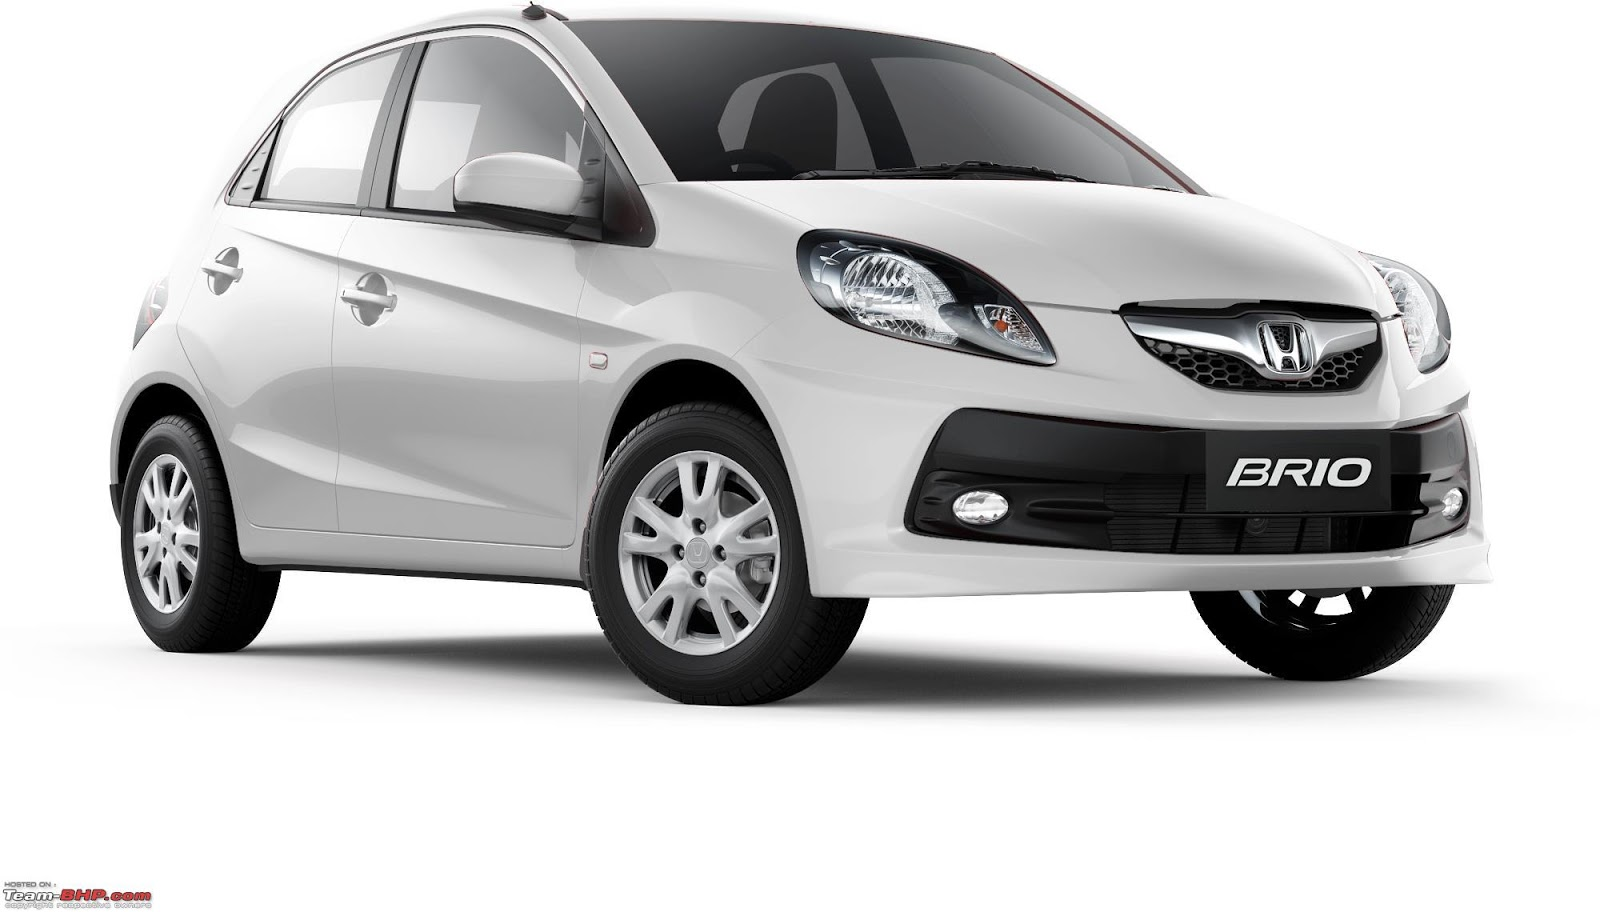 honda brio vtec with Honda Brio Review 2013 on Unicar Motorsport as well Honda Jazz And Maruti Baleno also  furthermore 2016 Honda Civic Coupe Revealed With Bigger Cabin Turbo Engine Video Photo Gallery 102111 further 98 99 Cl 98 02 Accord Obd2b Ecu Pin Out 2785965.